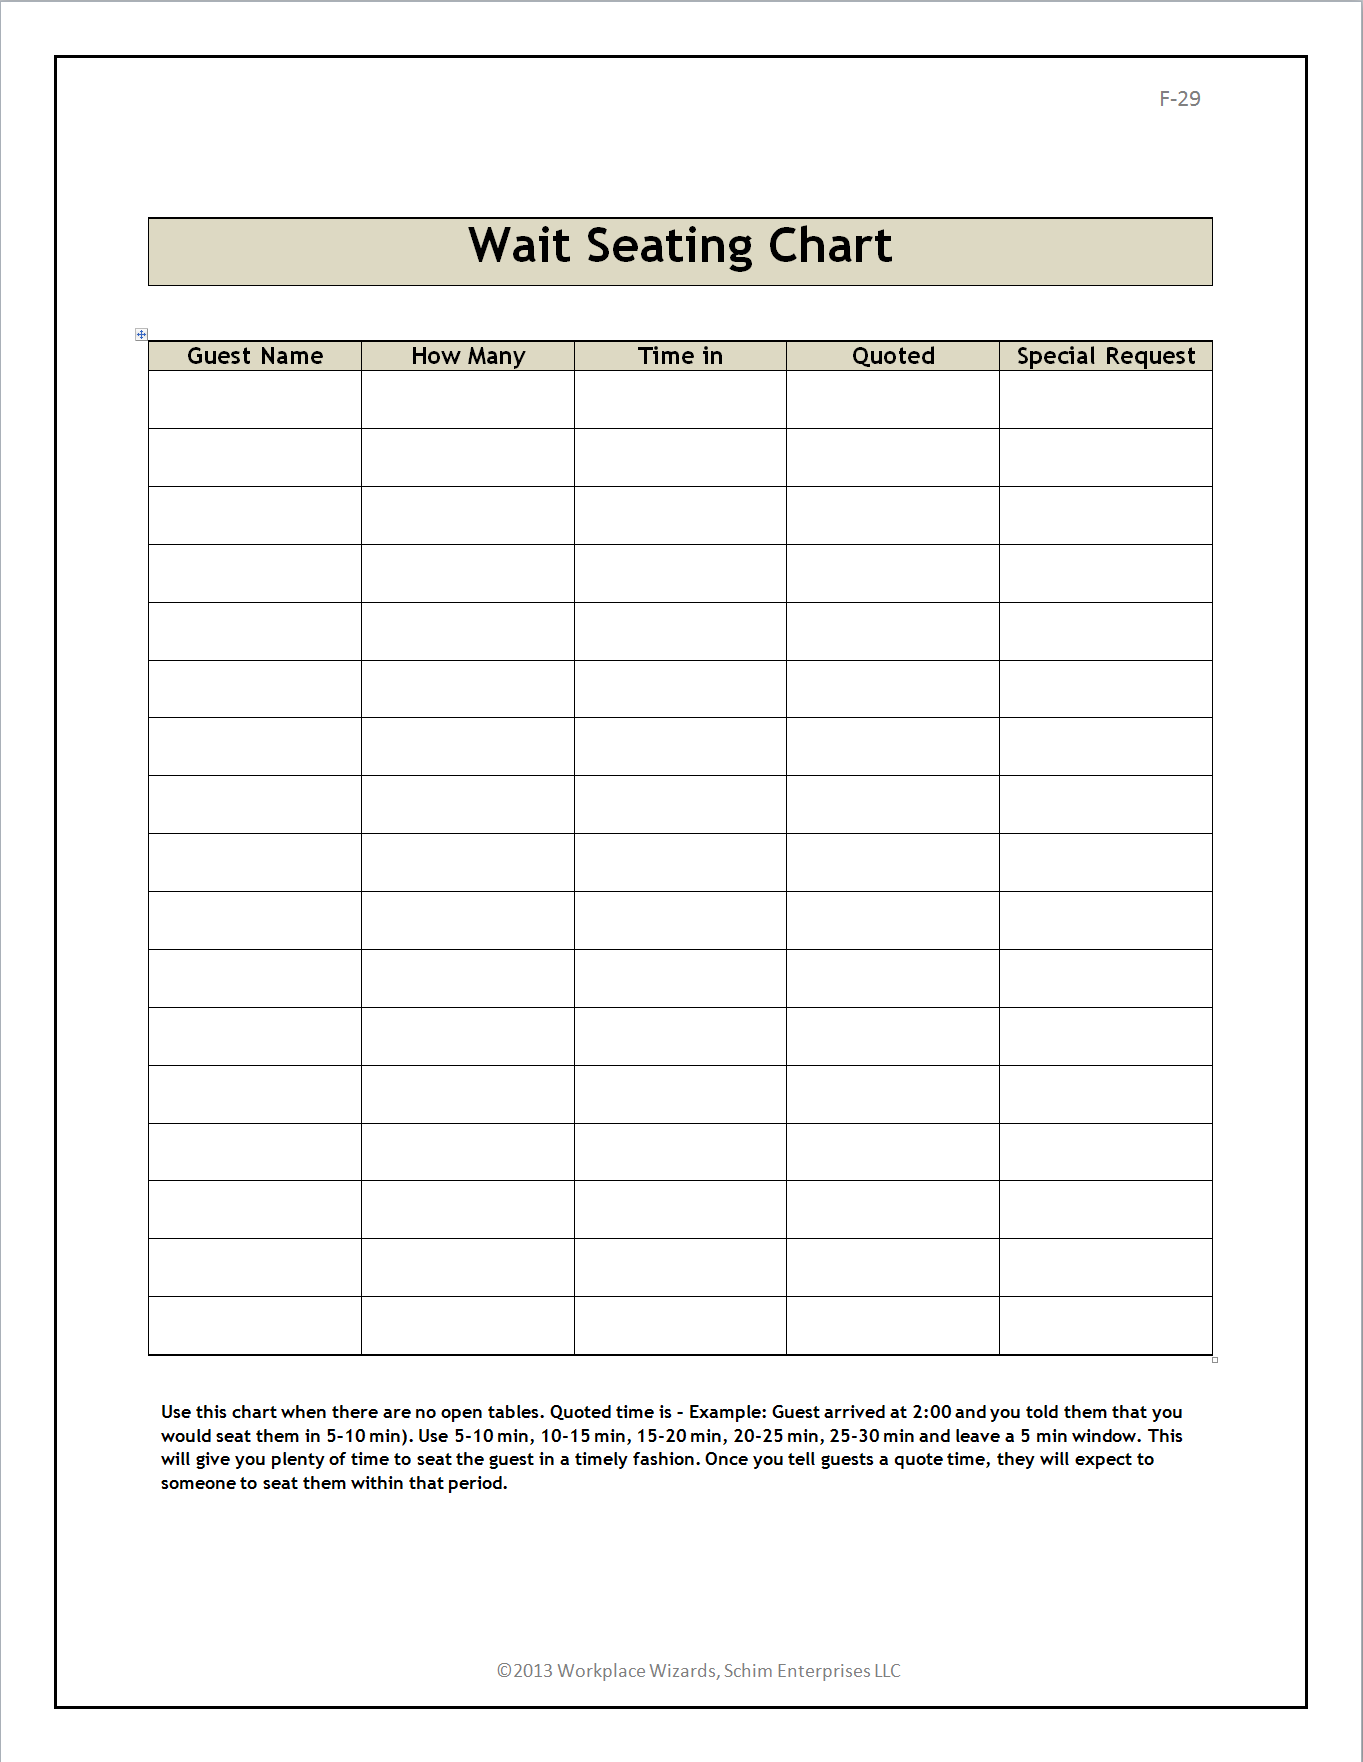 Letters Of Seating Chart Template Excel Intended For Seating Chart Template Excel In Spreadsheet